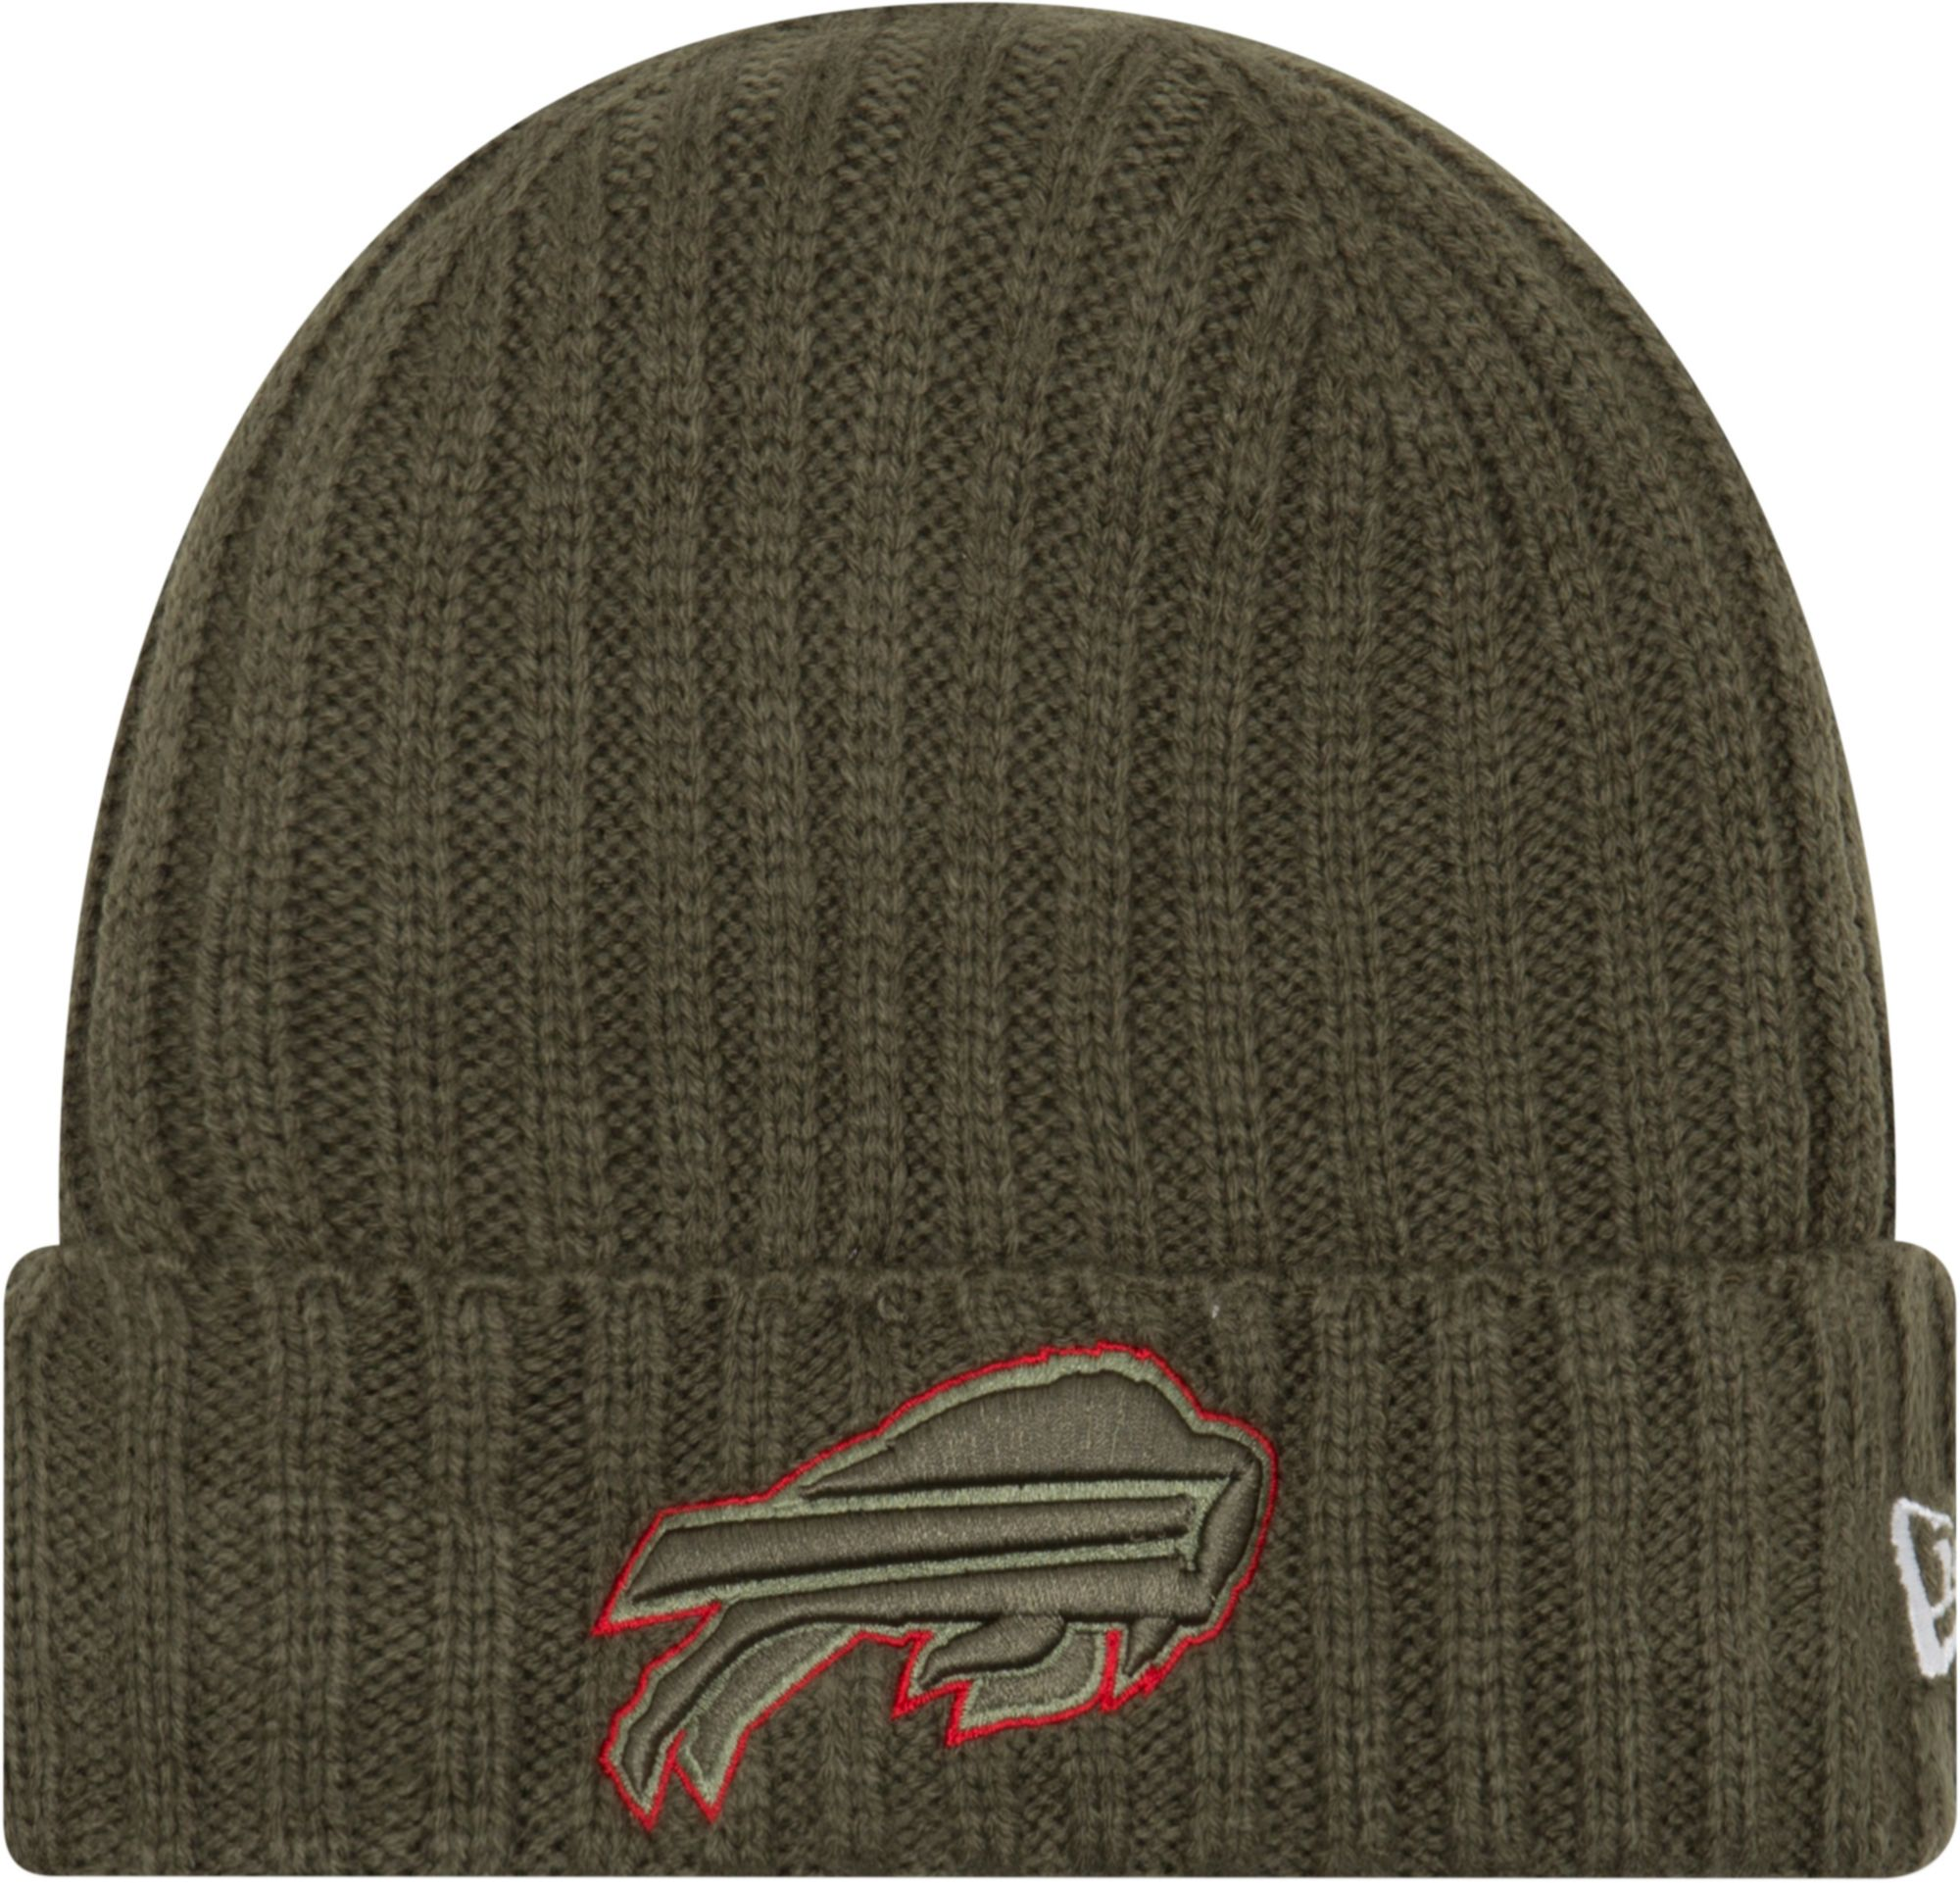 60065a5dc ... discount code for new era youth buffalo bills salute to service 2017  knit hat 8ae77 5f955 ...